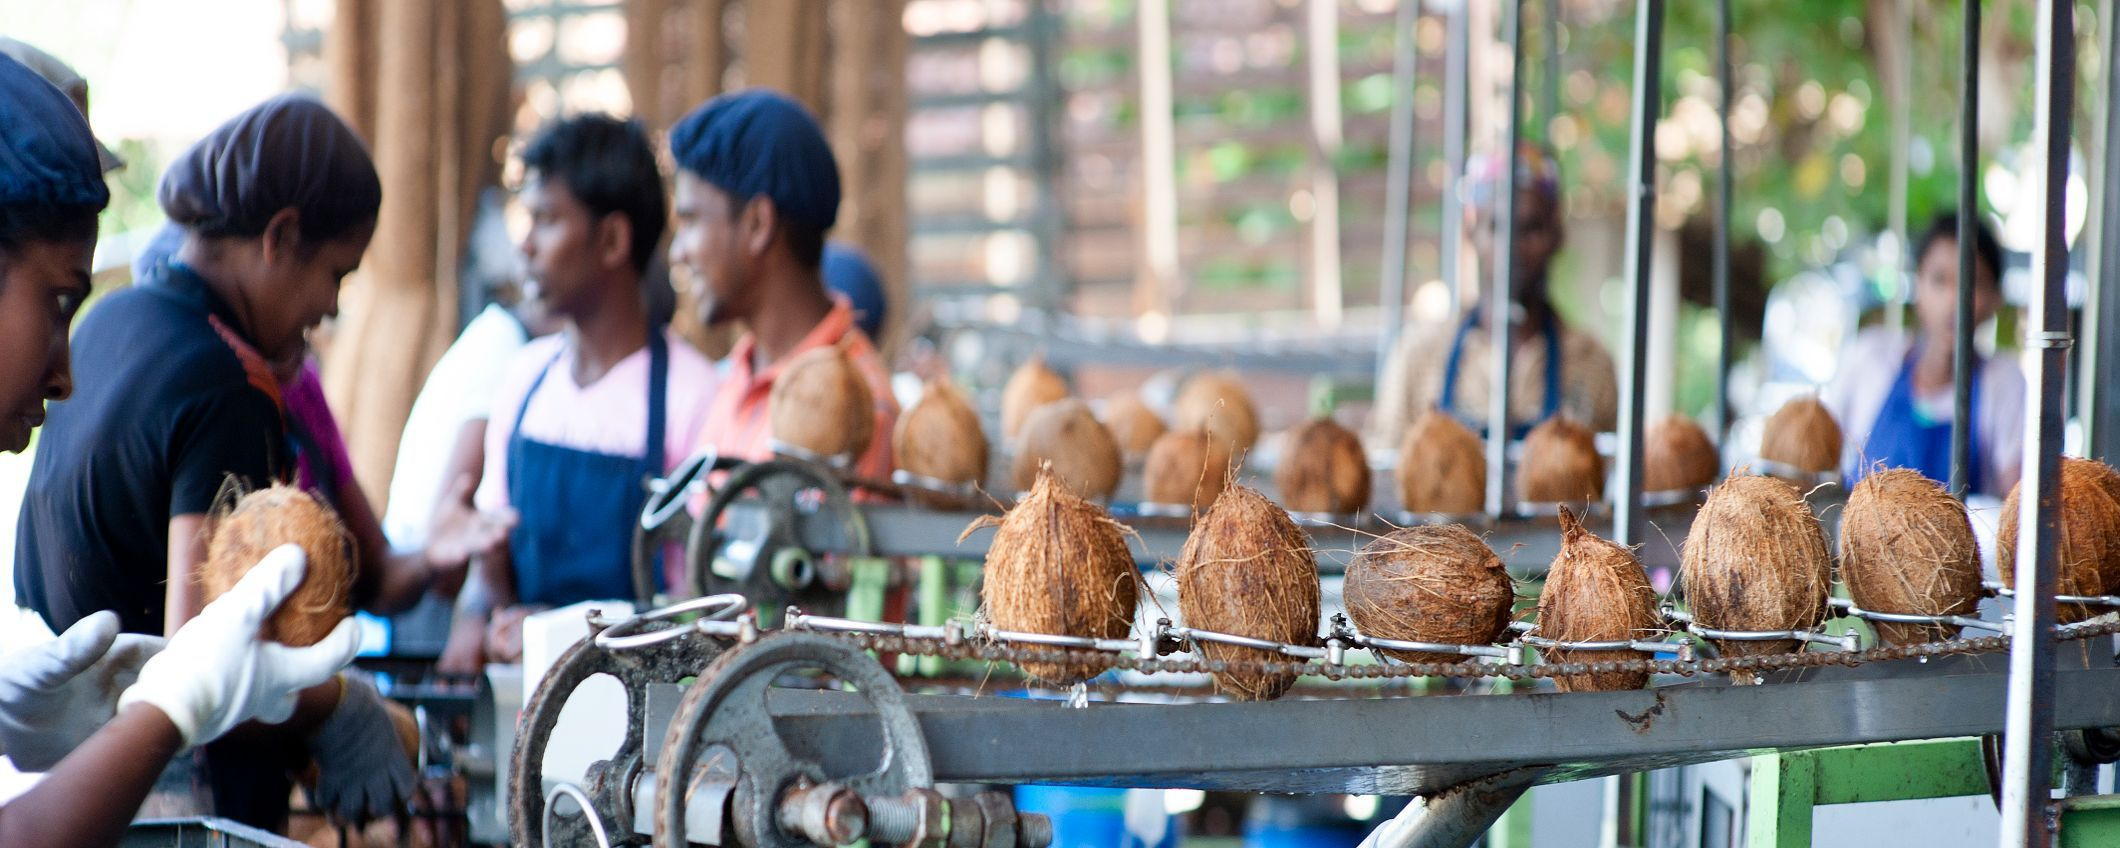 assembly line with coconuts and workers